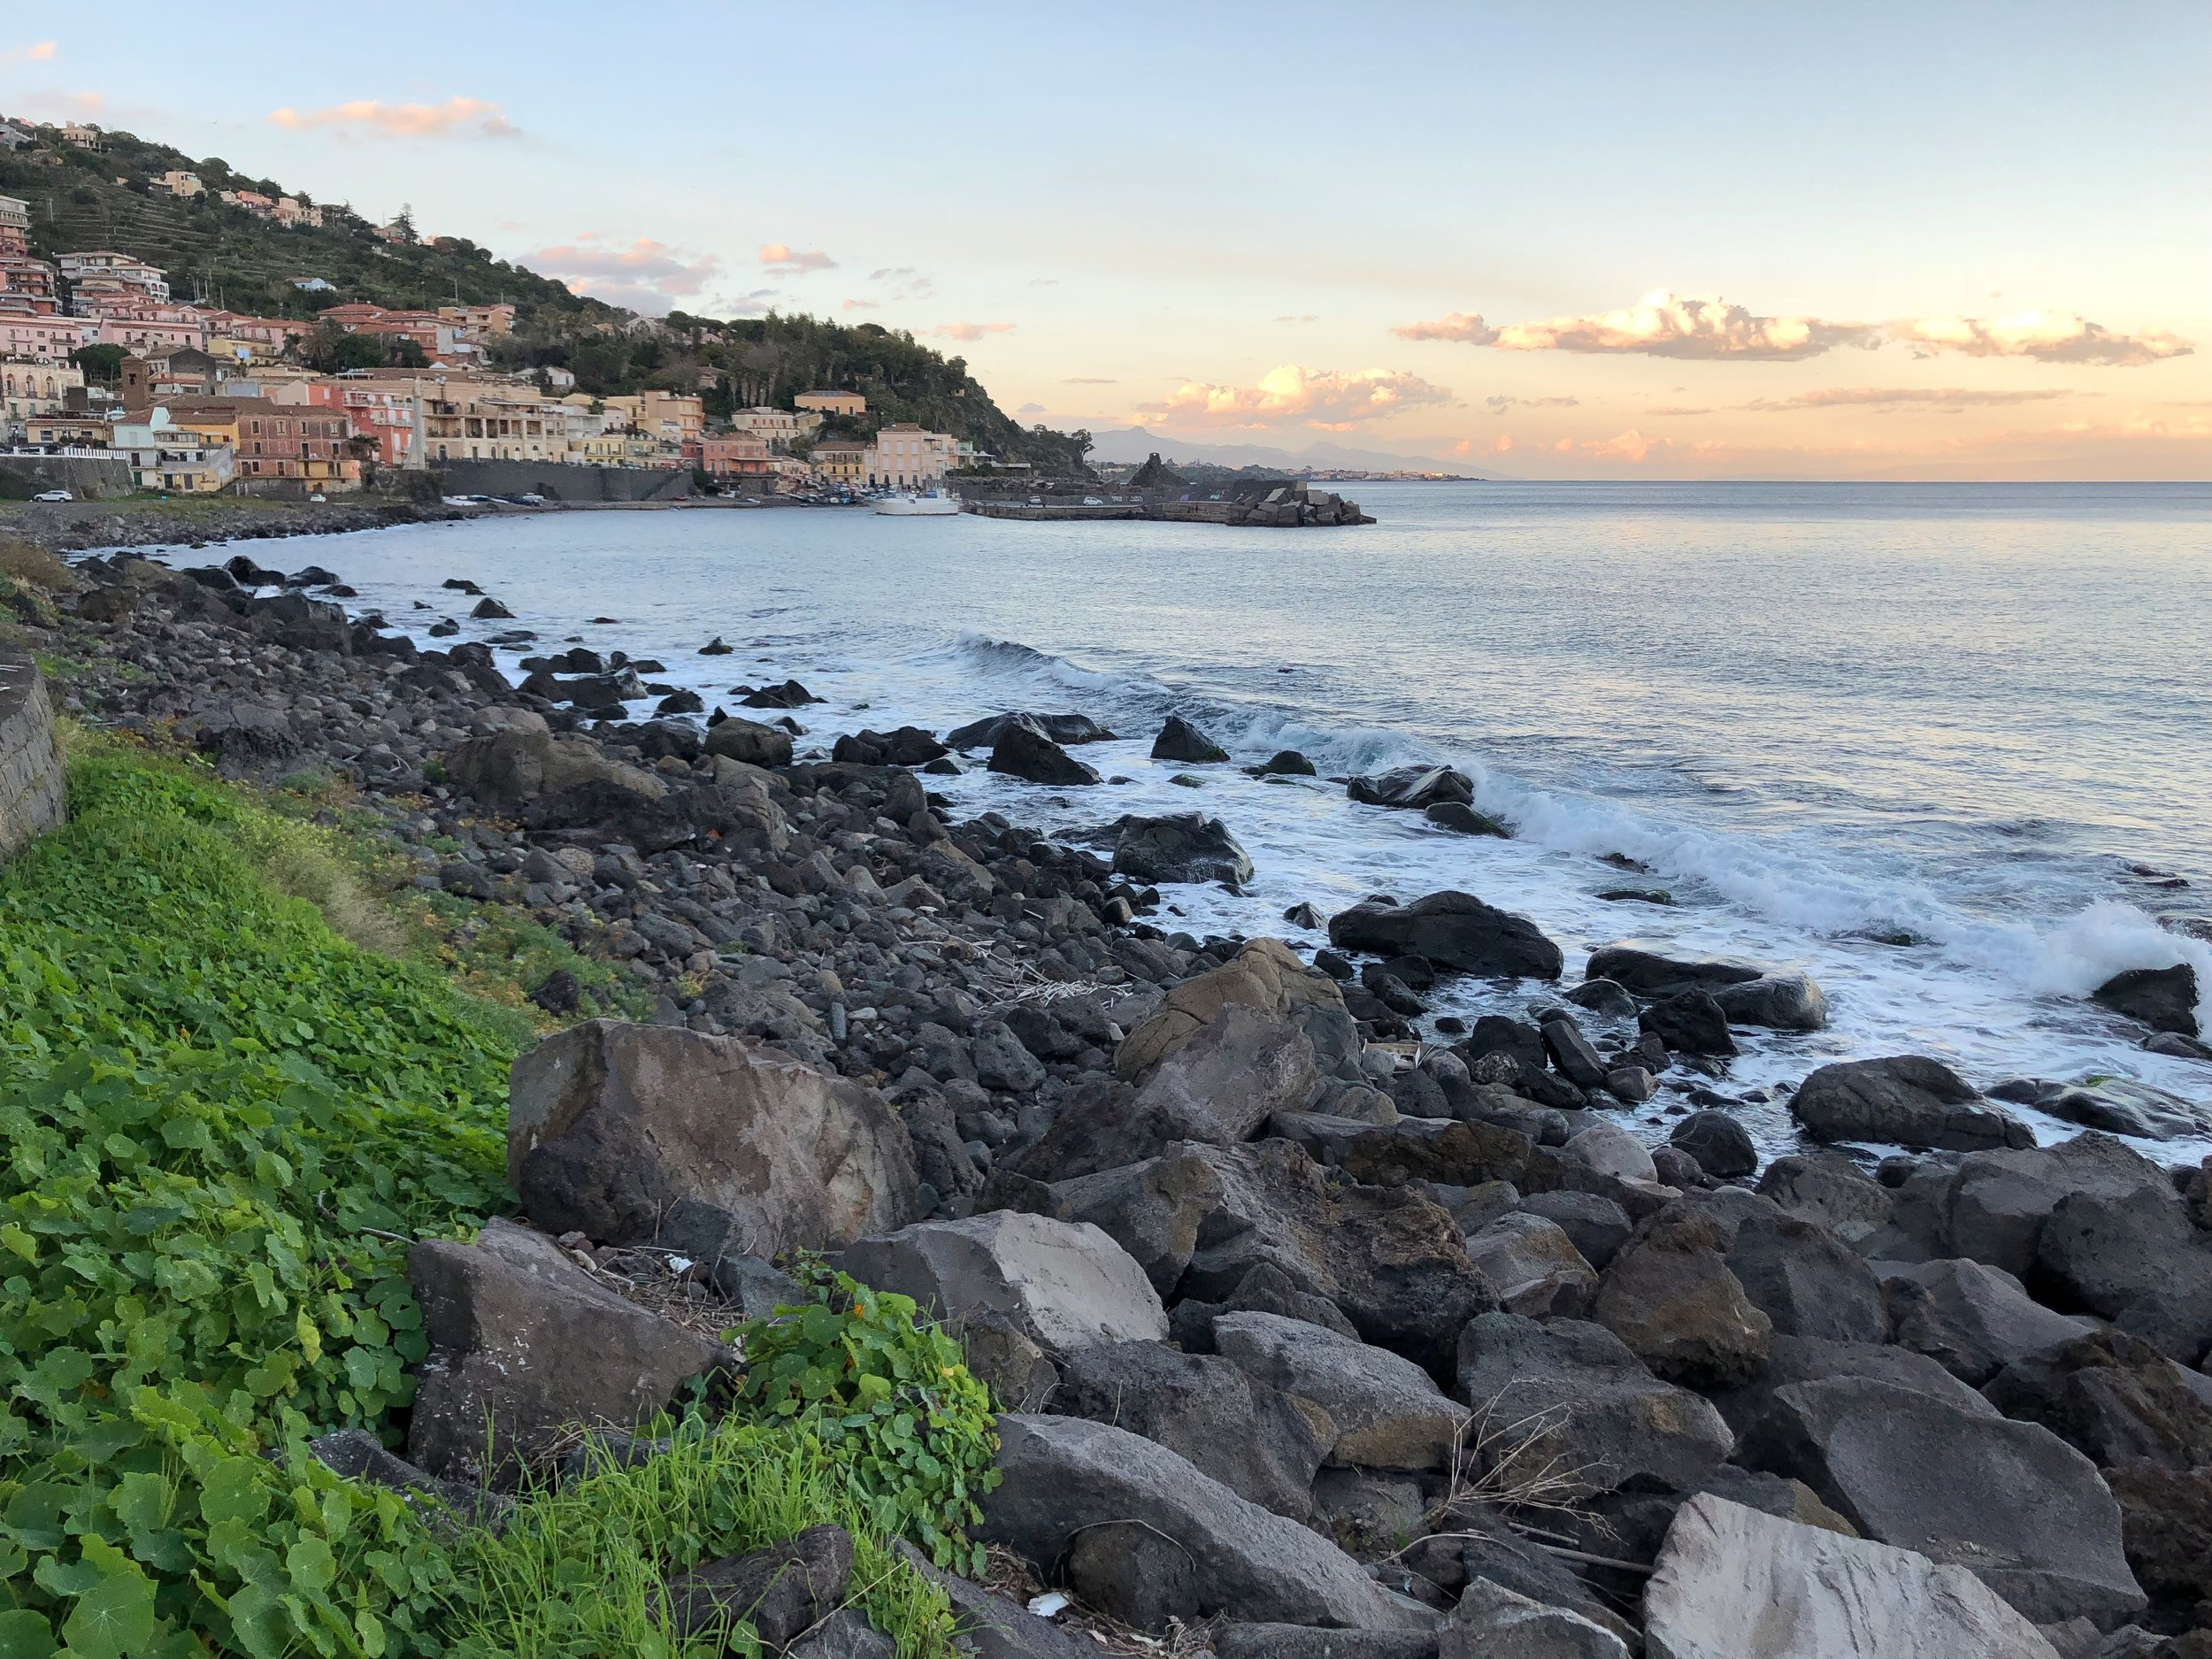 After going to the top of Mt. Etna, our day ended here, with a sunset walk on the water in Santa Maria La Scala (near Acireale).